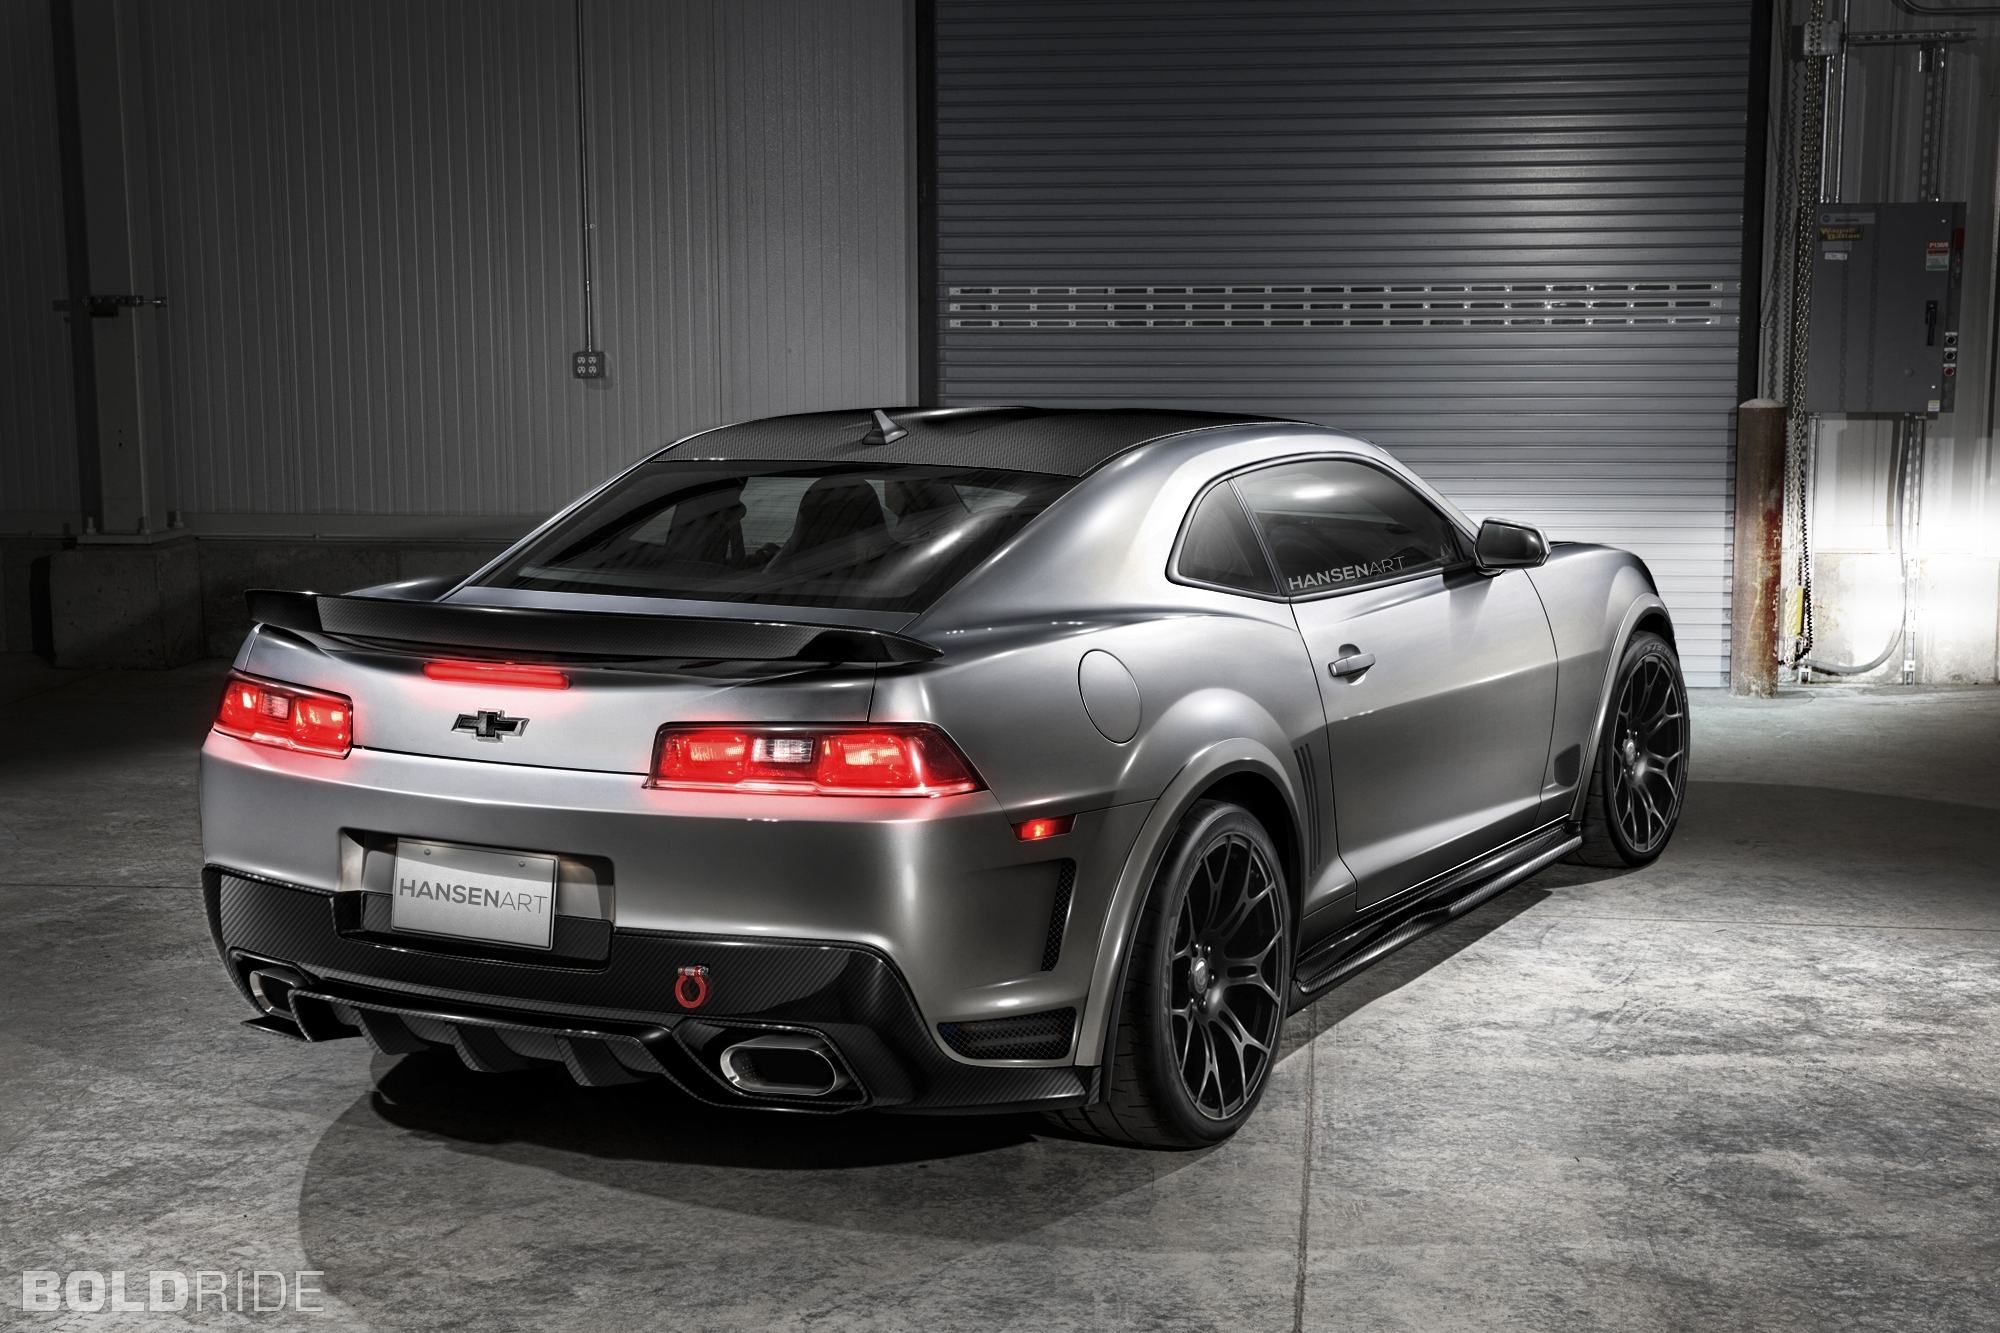 2014 Chevrolet Camaro Carbon Line Concept Muscle Cars Tuning Q Wallpaper 2000x1333 79133